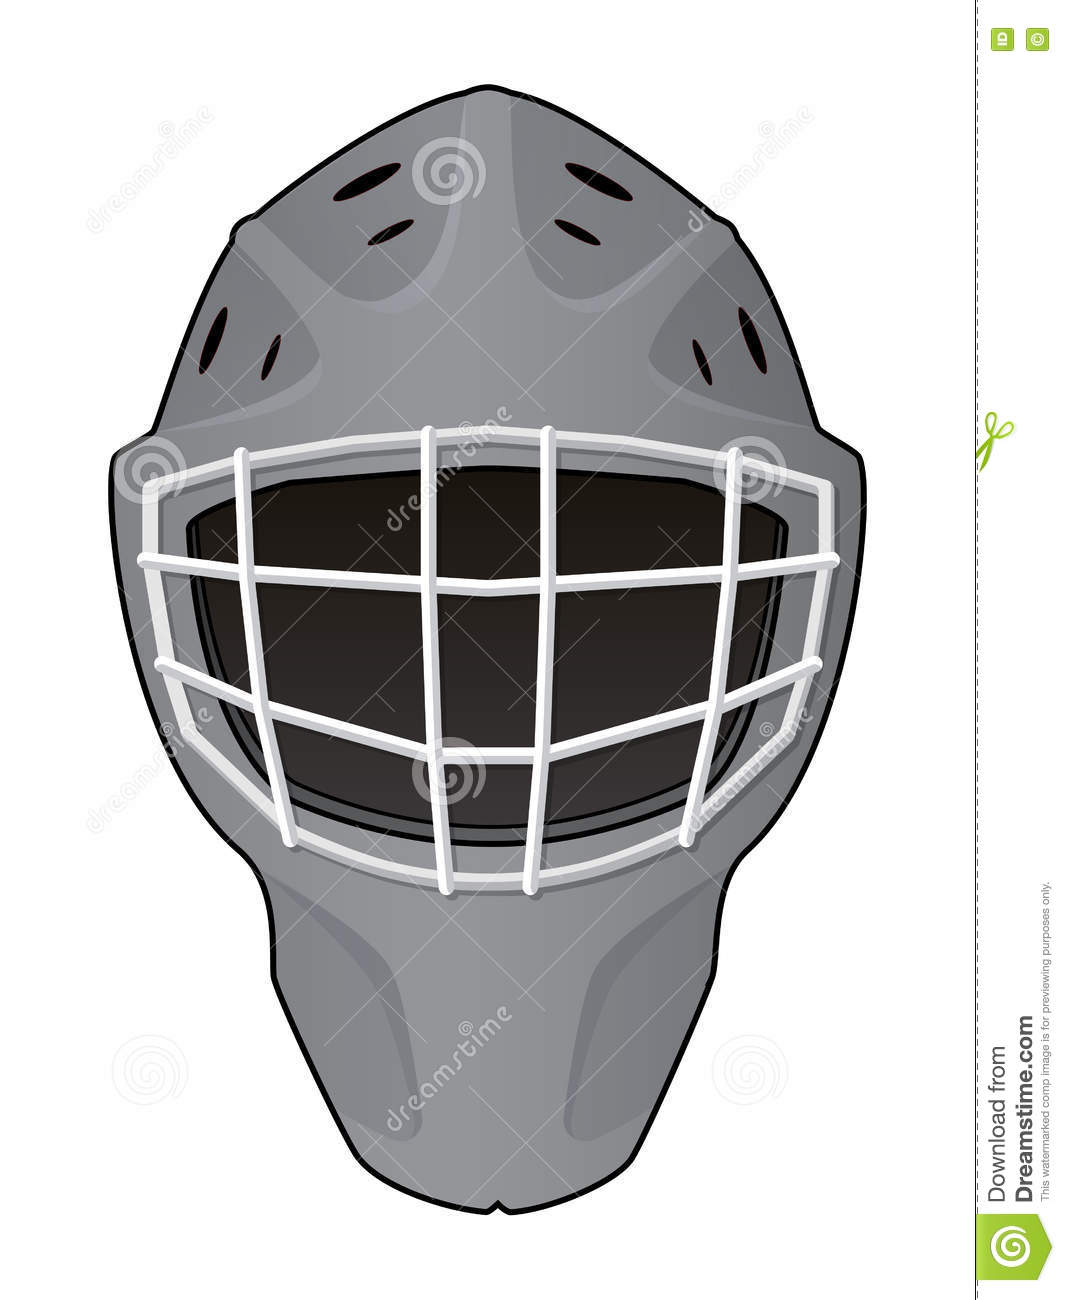 Layout Of Hockey Goalie Helmet Stock Vector - Illustration ...